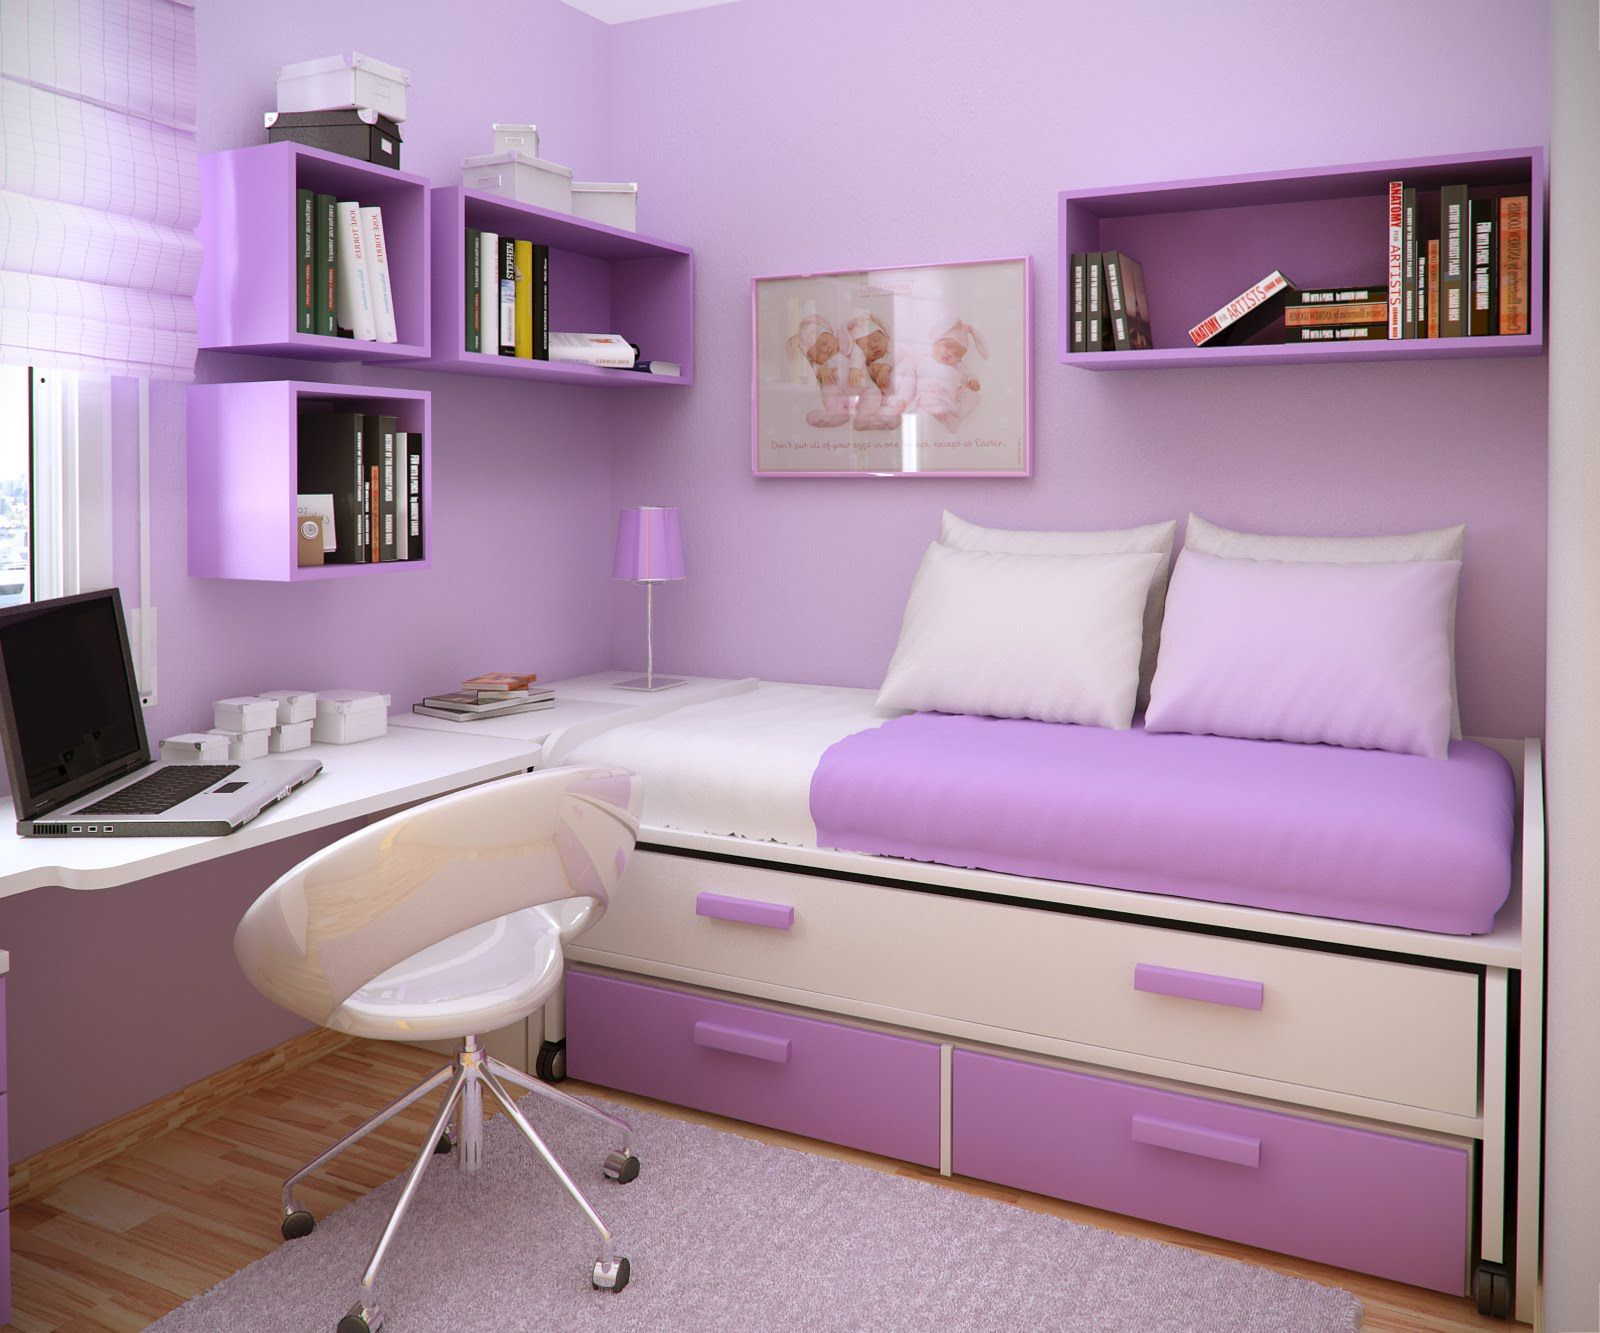 Bedroom ideas for girls purple - Chic Girls Purple Bedrooms Furnishing Design With Floating Booksheleves Over Sleeper Couch Storage In Small Space